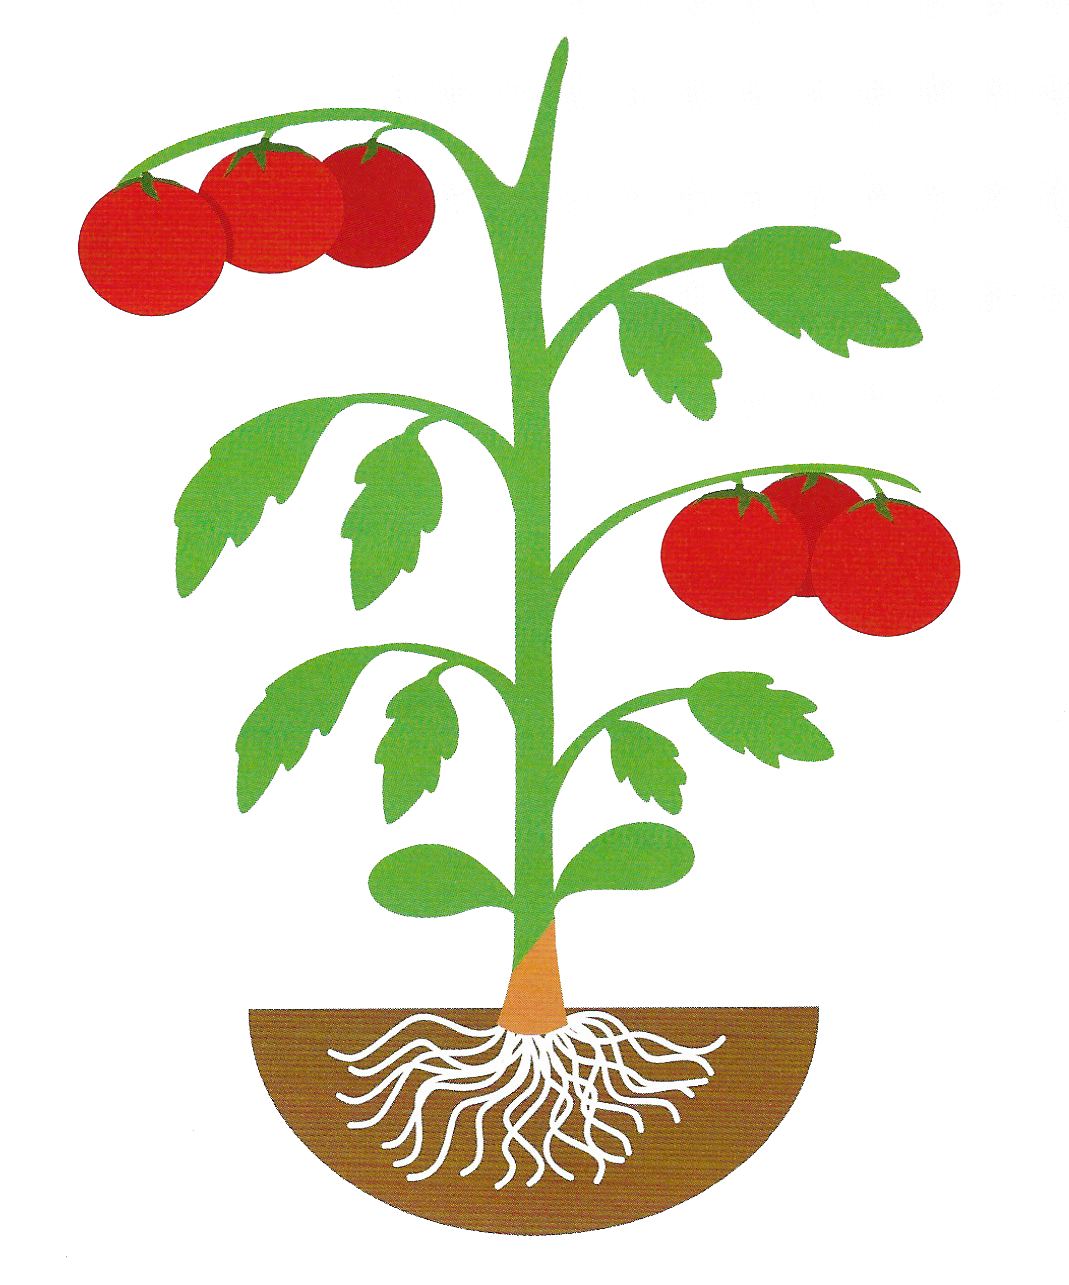 Tomatoes clipart tomato stem. Rootstocks archives american takii